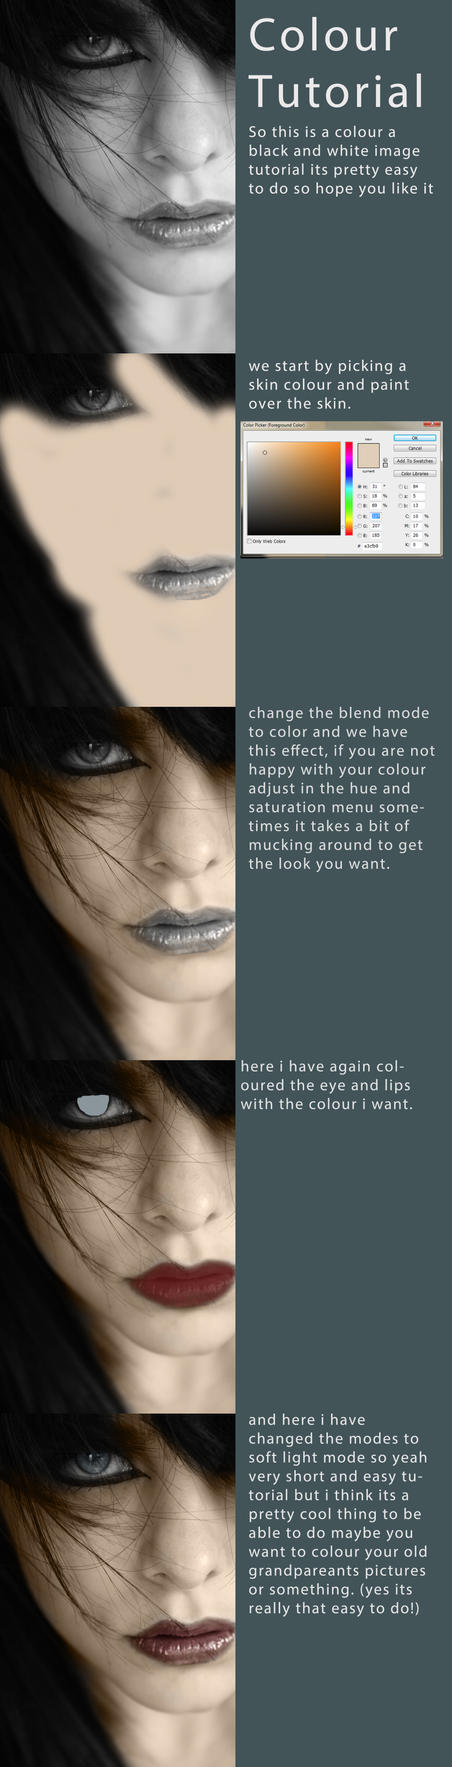 Colour a black and white image tutorial by HaleyDesigns